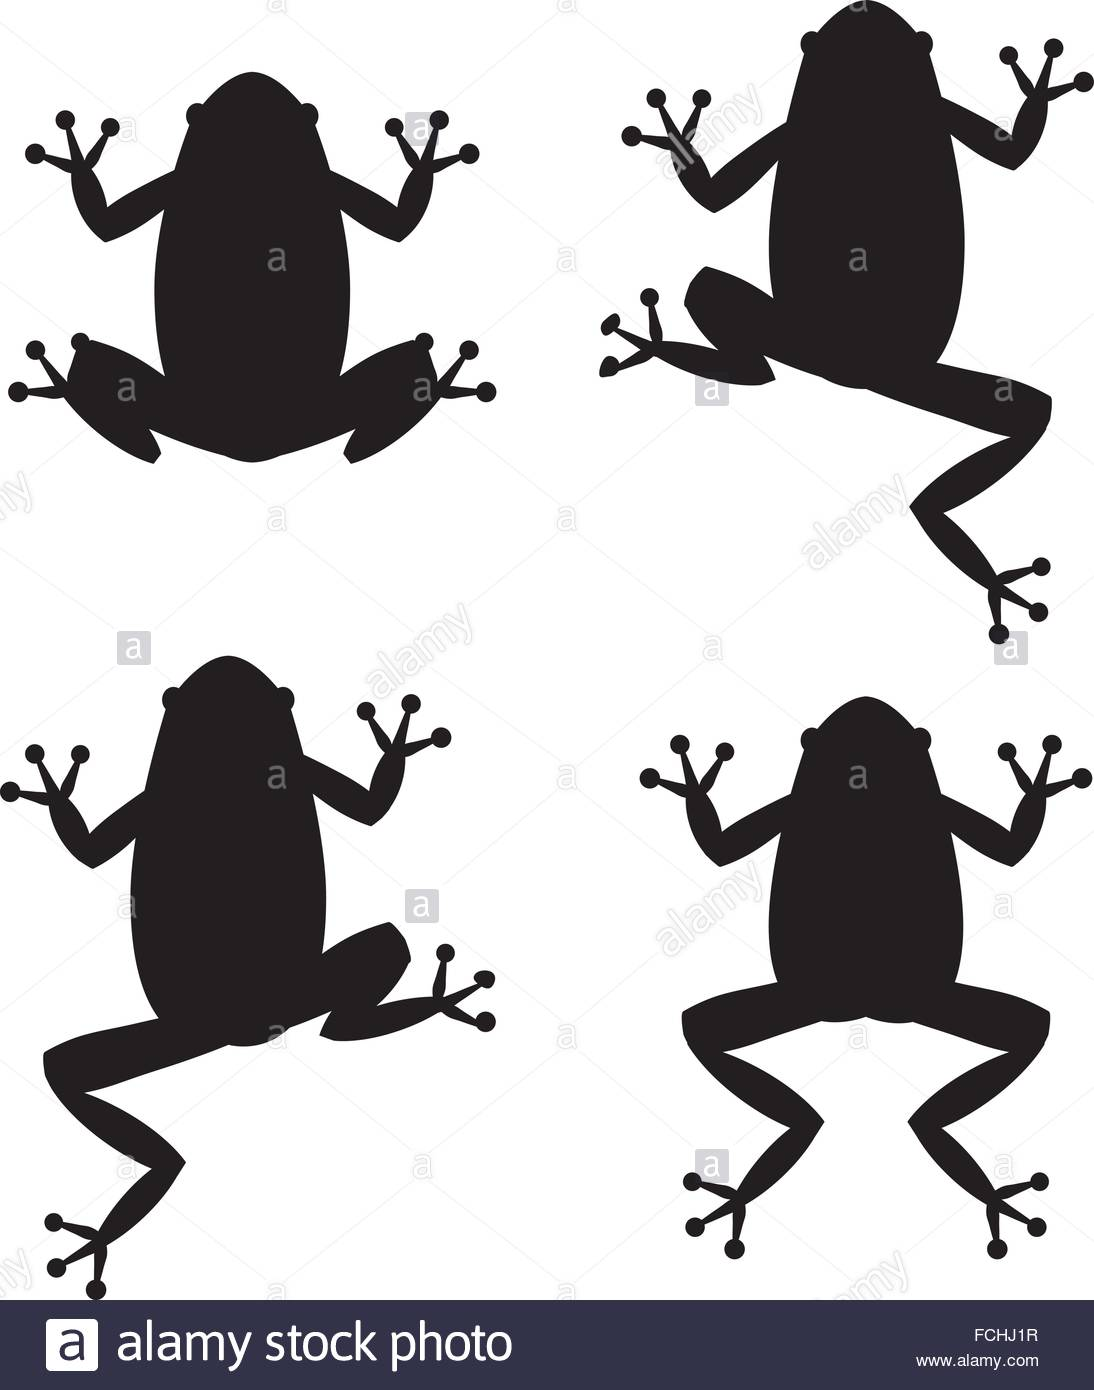 1094x1390 Set Of Frog Silhouettes On White Background, Vector Stock Vector